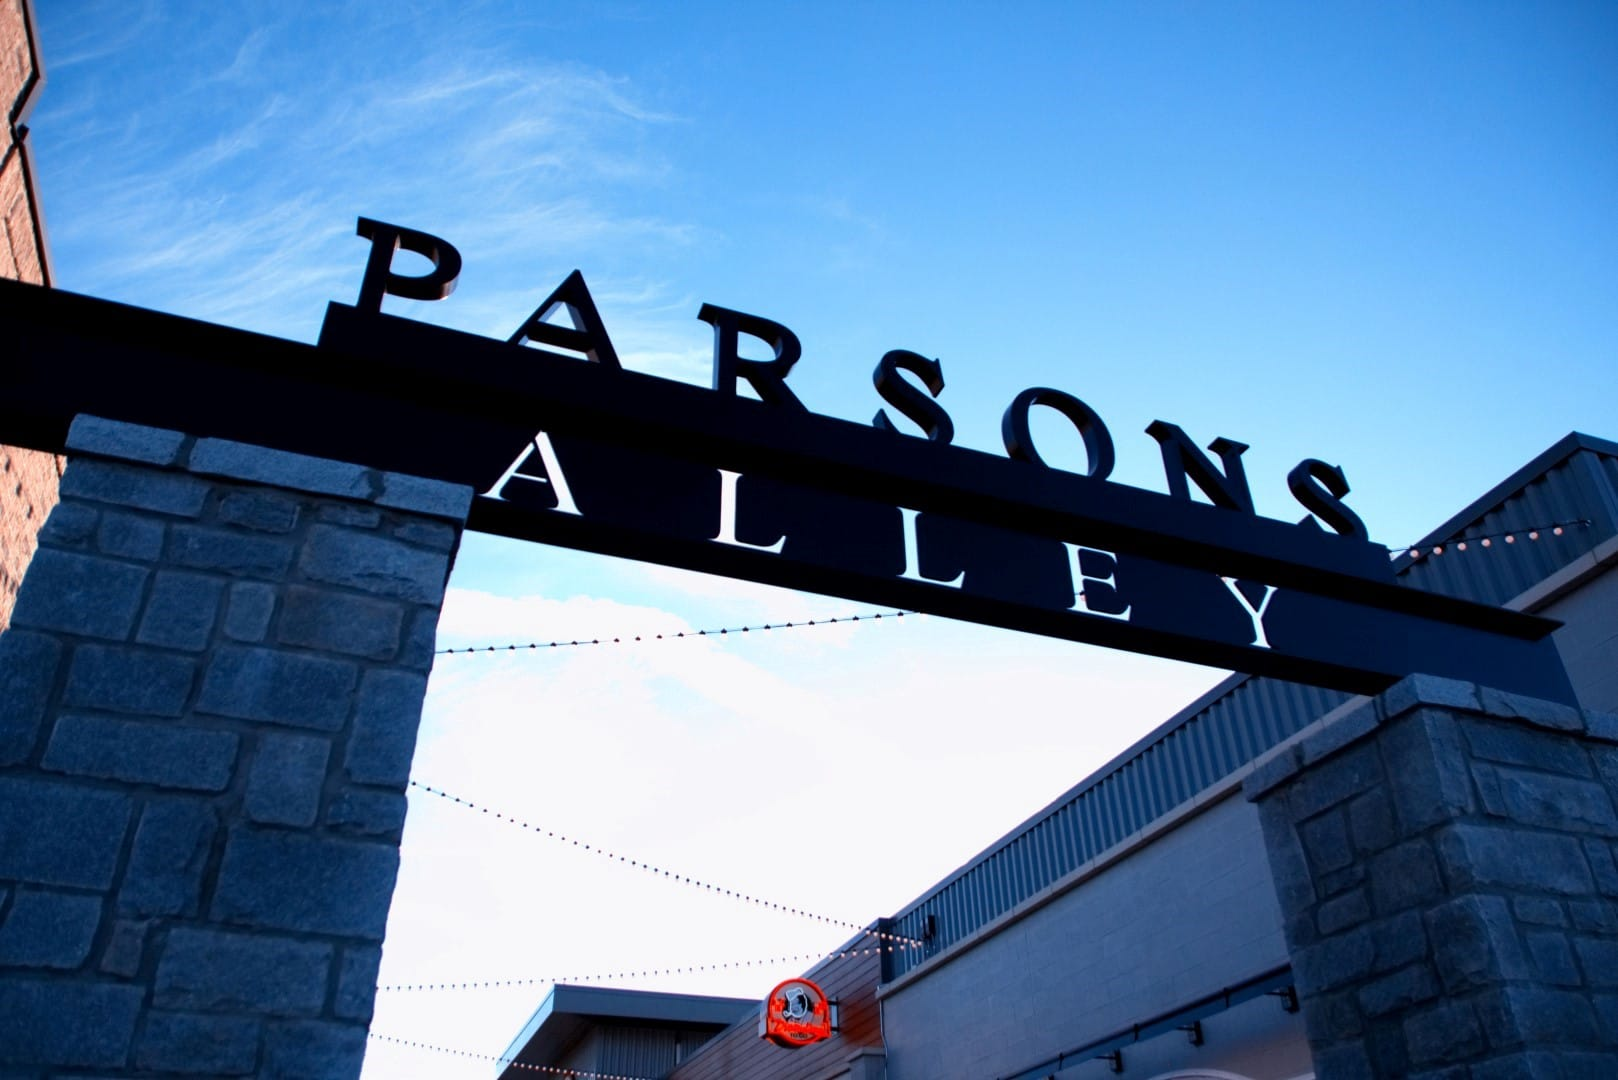 Place Based Branding Parsons Alley Signage